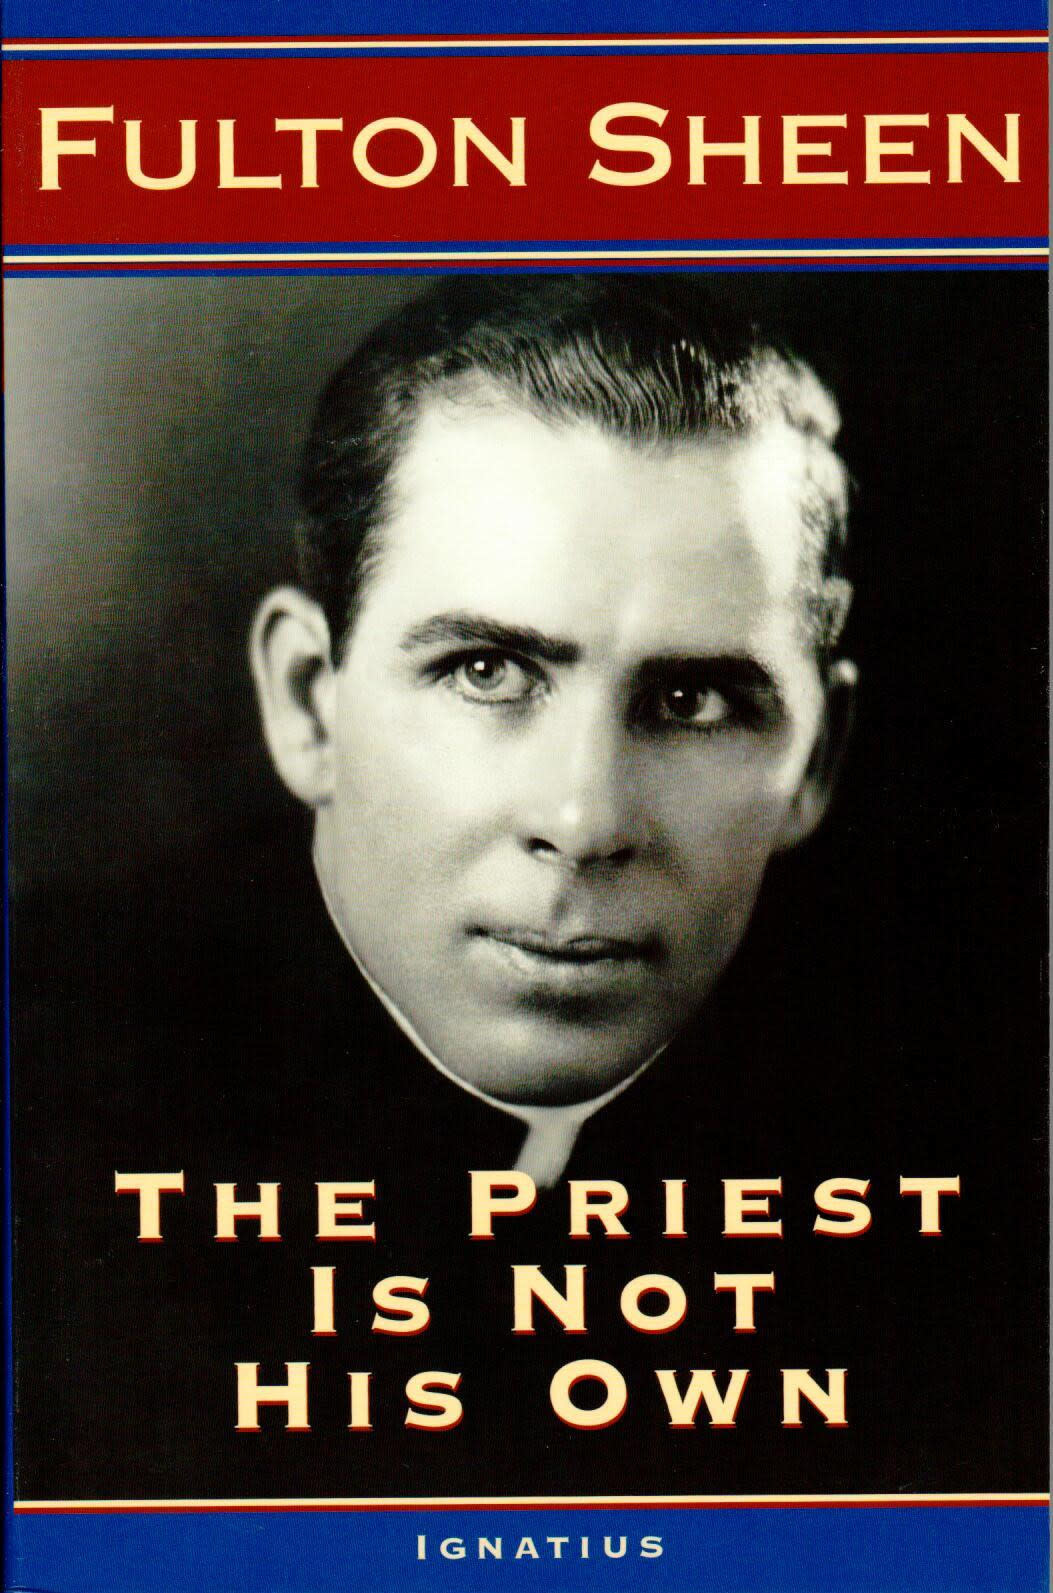 The Priest is Not His Own